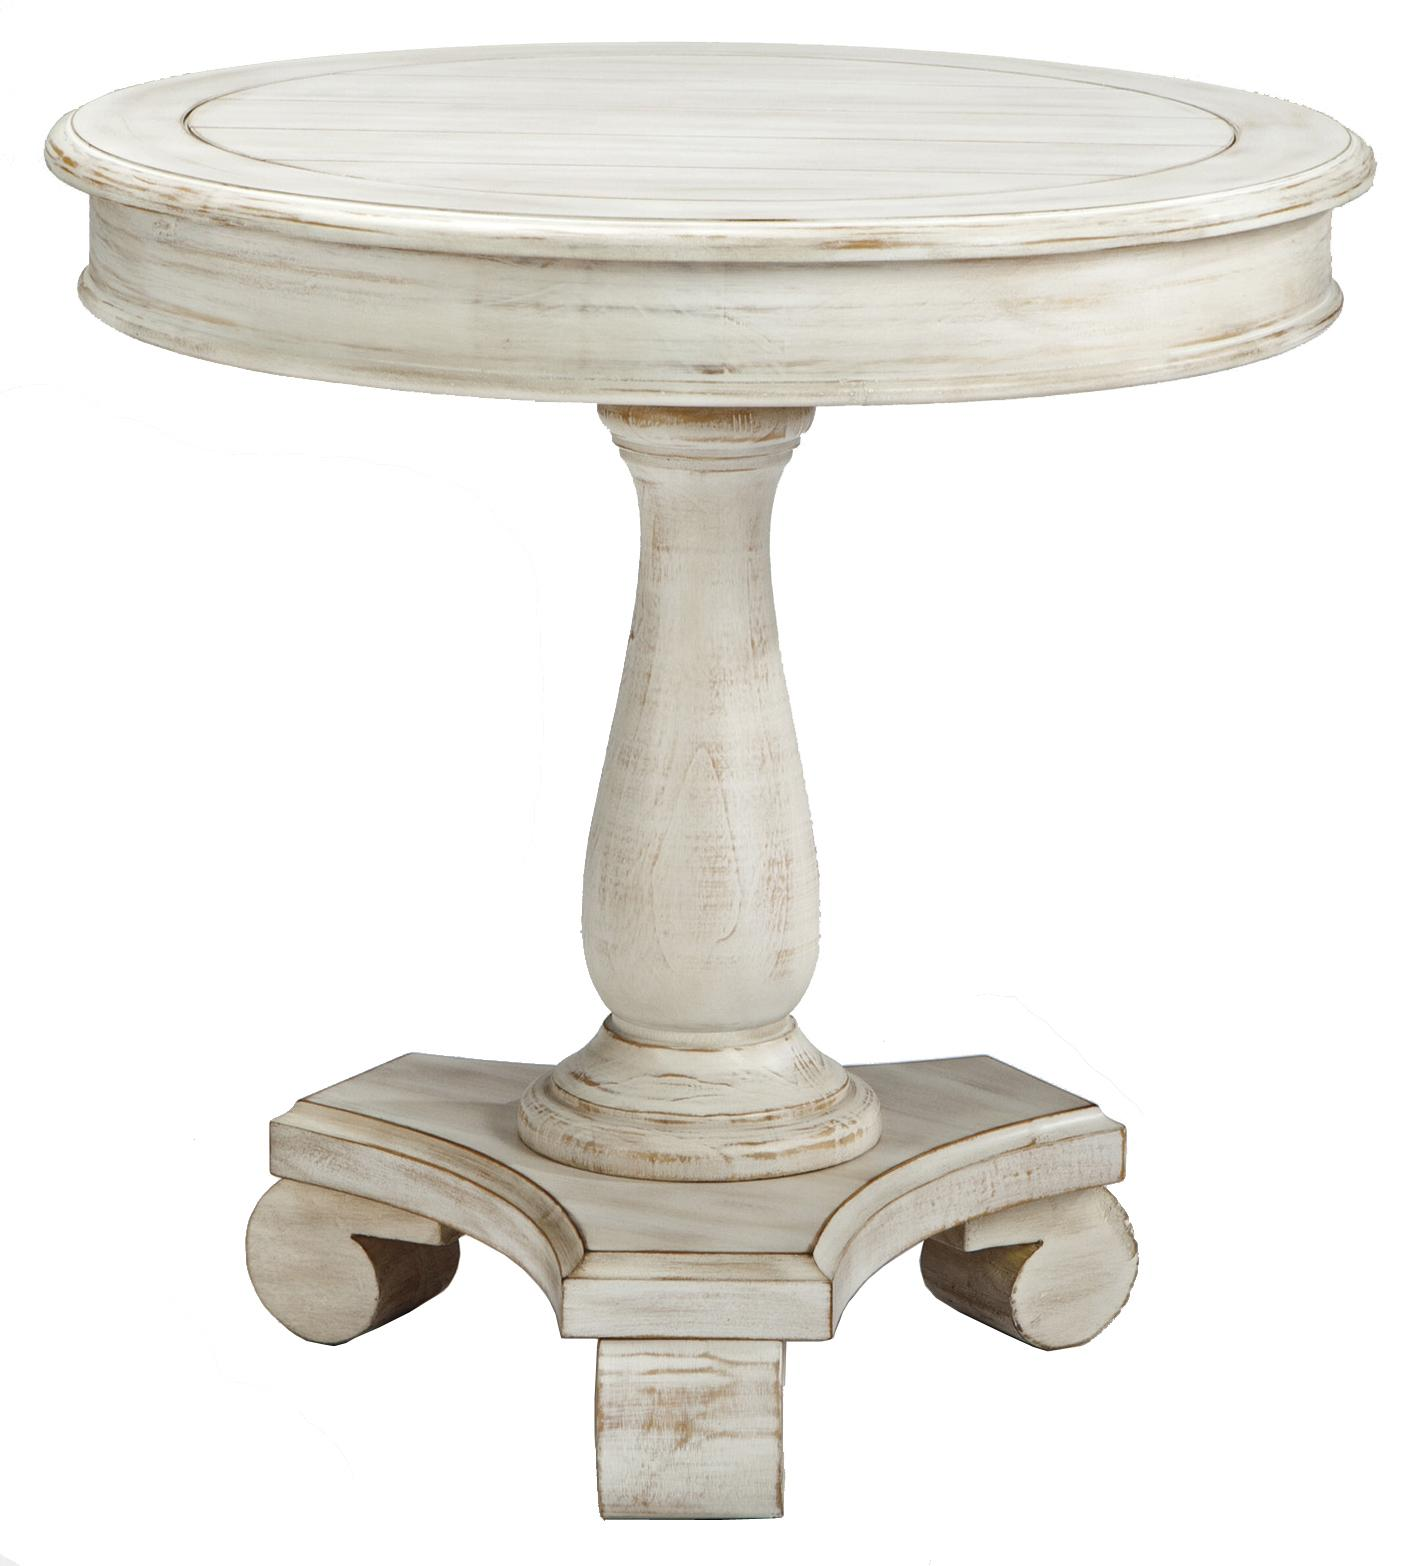 signature design ashley mirimyn round accent table with turned products color cottage accents drawer chests and trunks wood acrylic coffee off white end tables flexible carpet